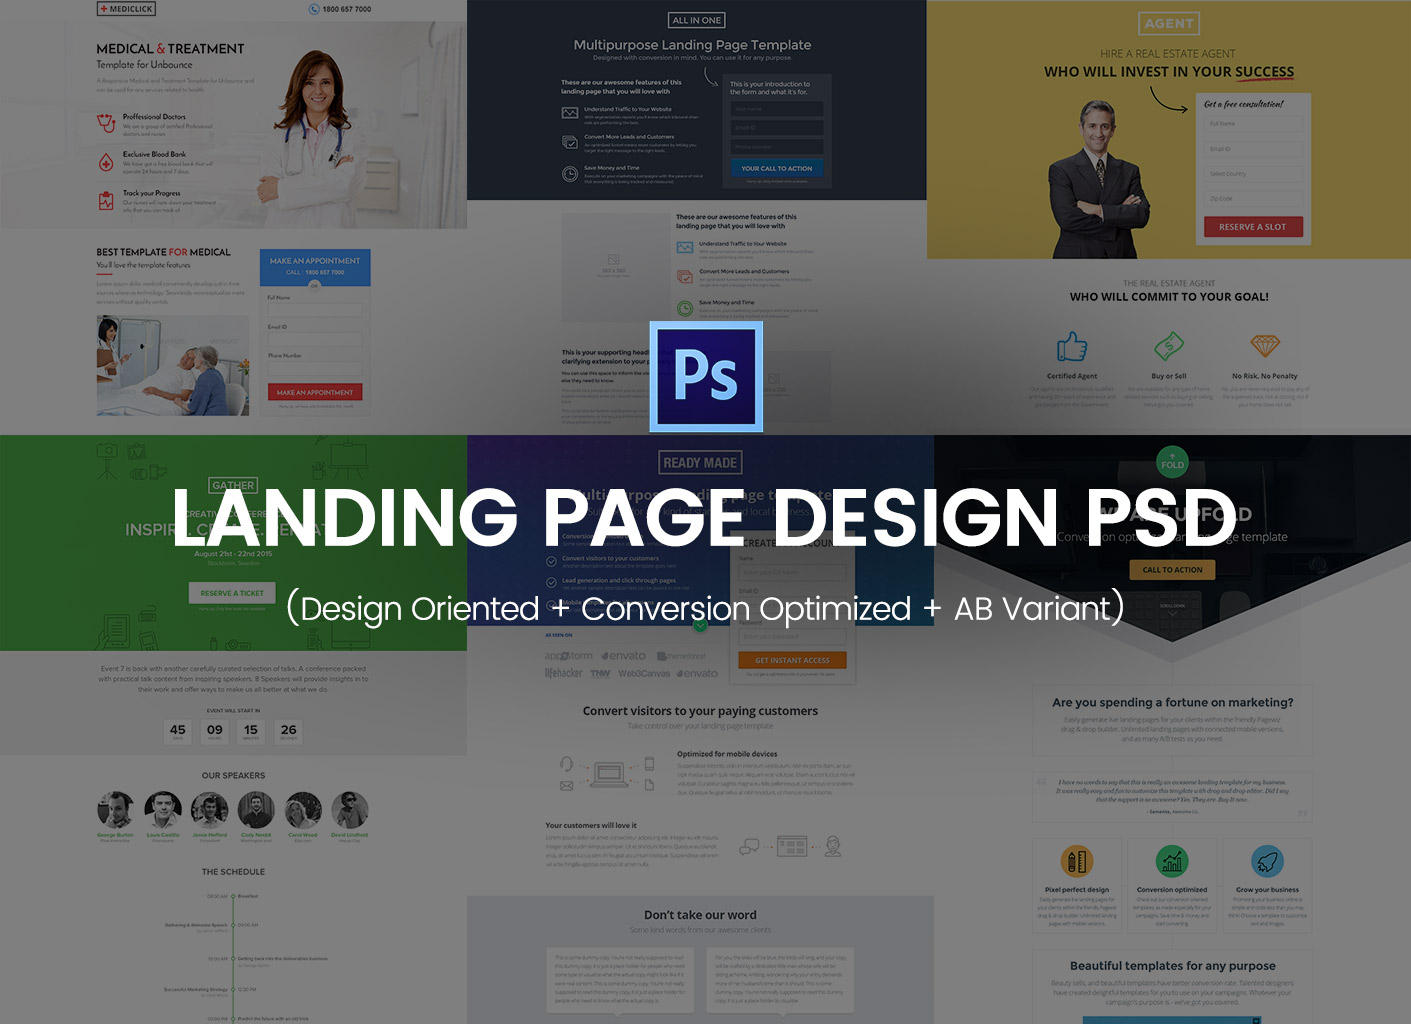 Landing Page Design PSD (Design Oriented + Conversion Optimized + AB Variant) by surjithctly - 95074